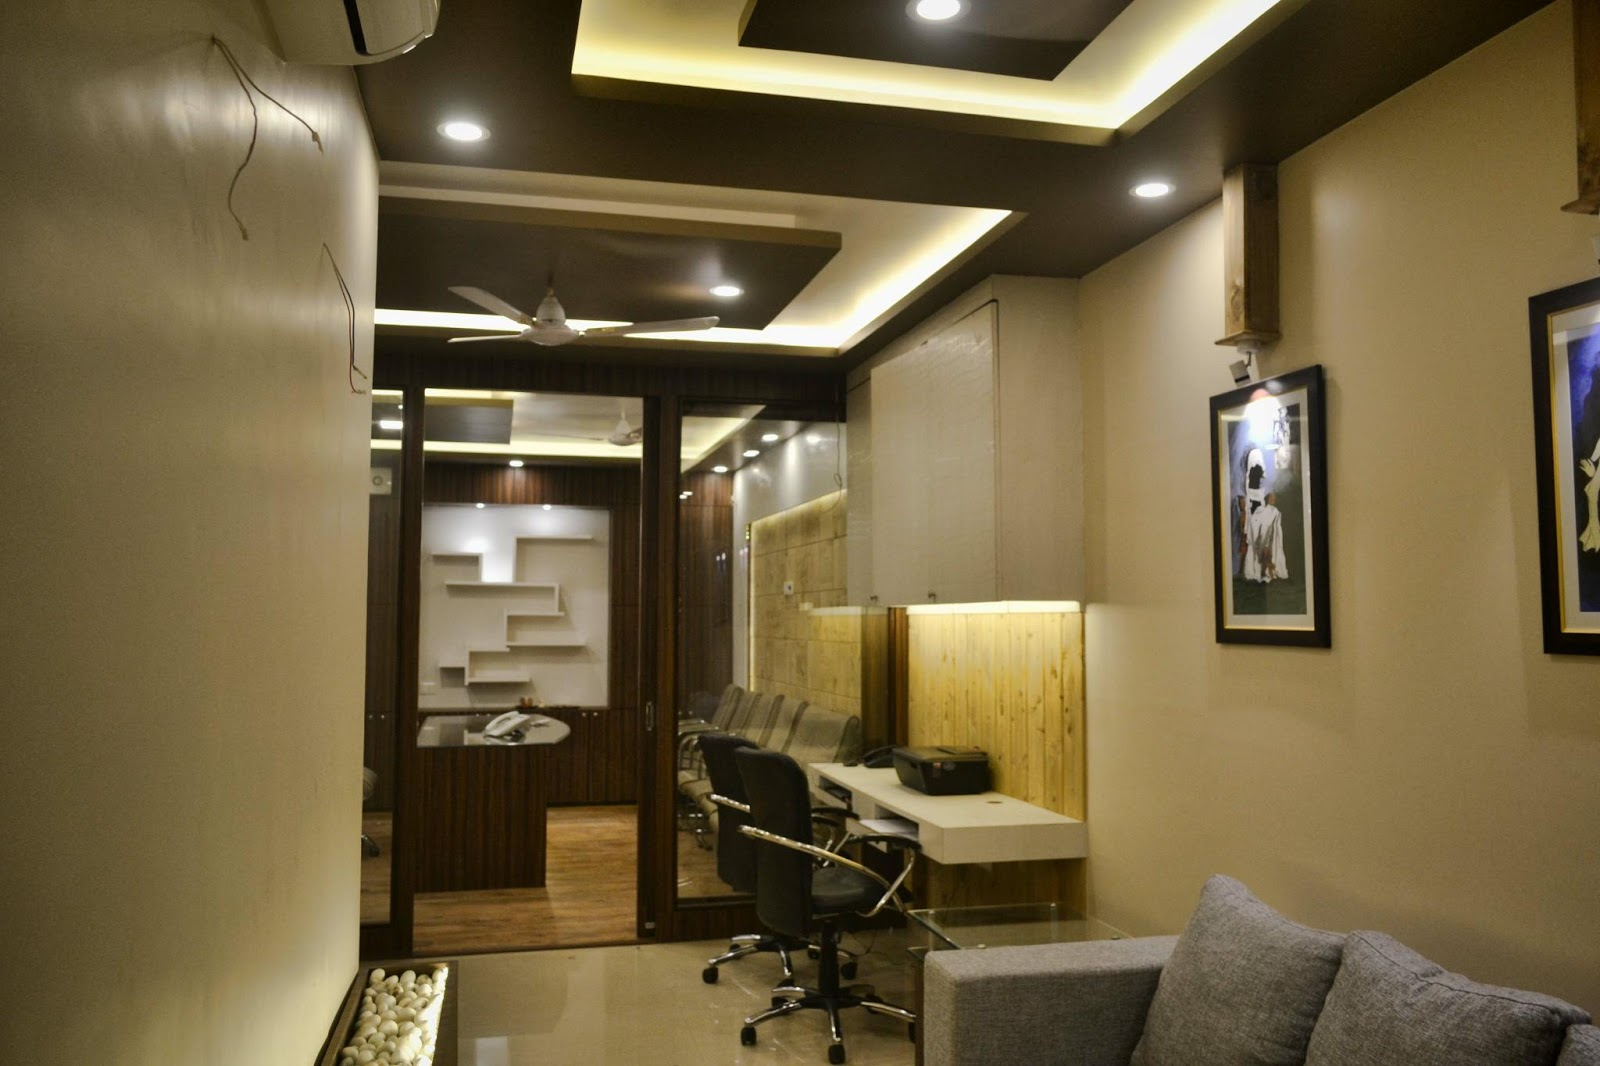 Bon A Senior Property Dealer Mr. Raj Oberoiu0027s Office Design In Modern Theme  Approximately The Area Of This Office Is 300 Sqft .